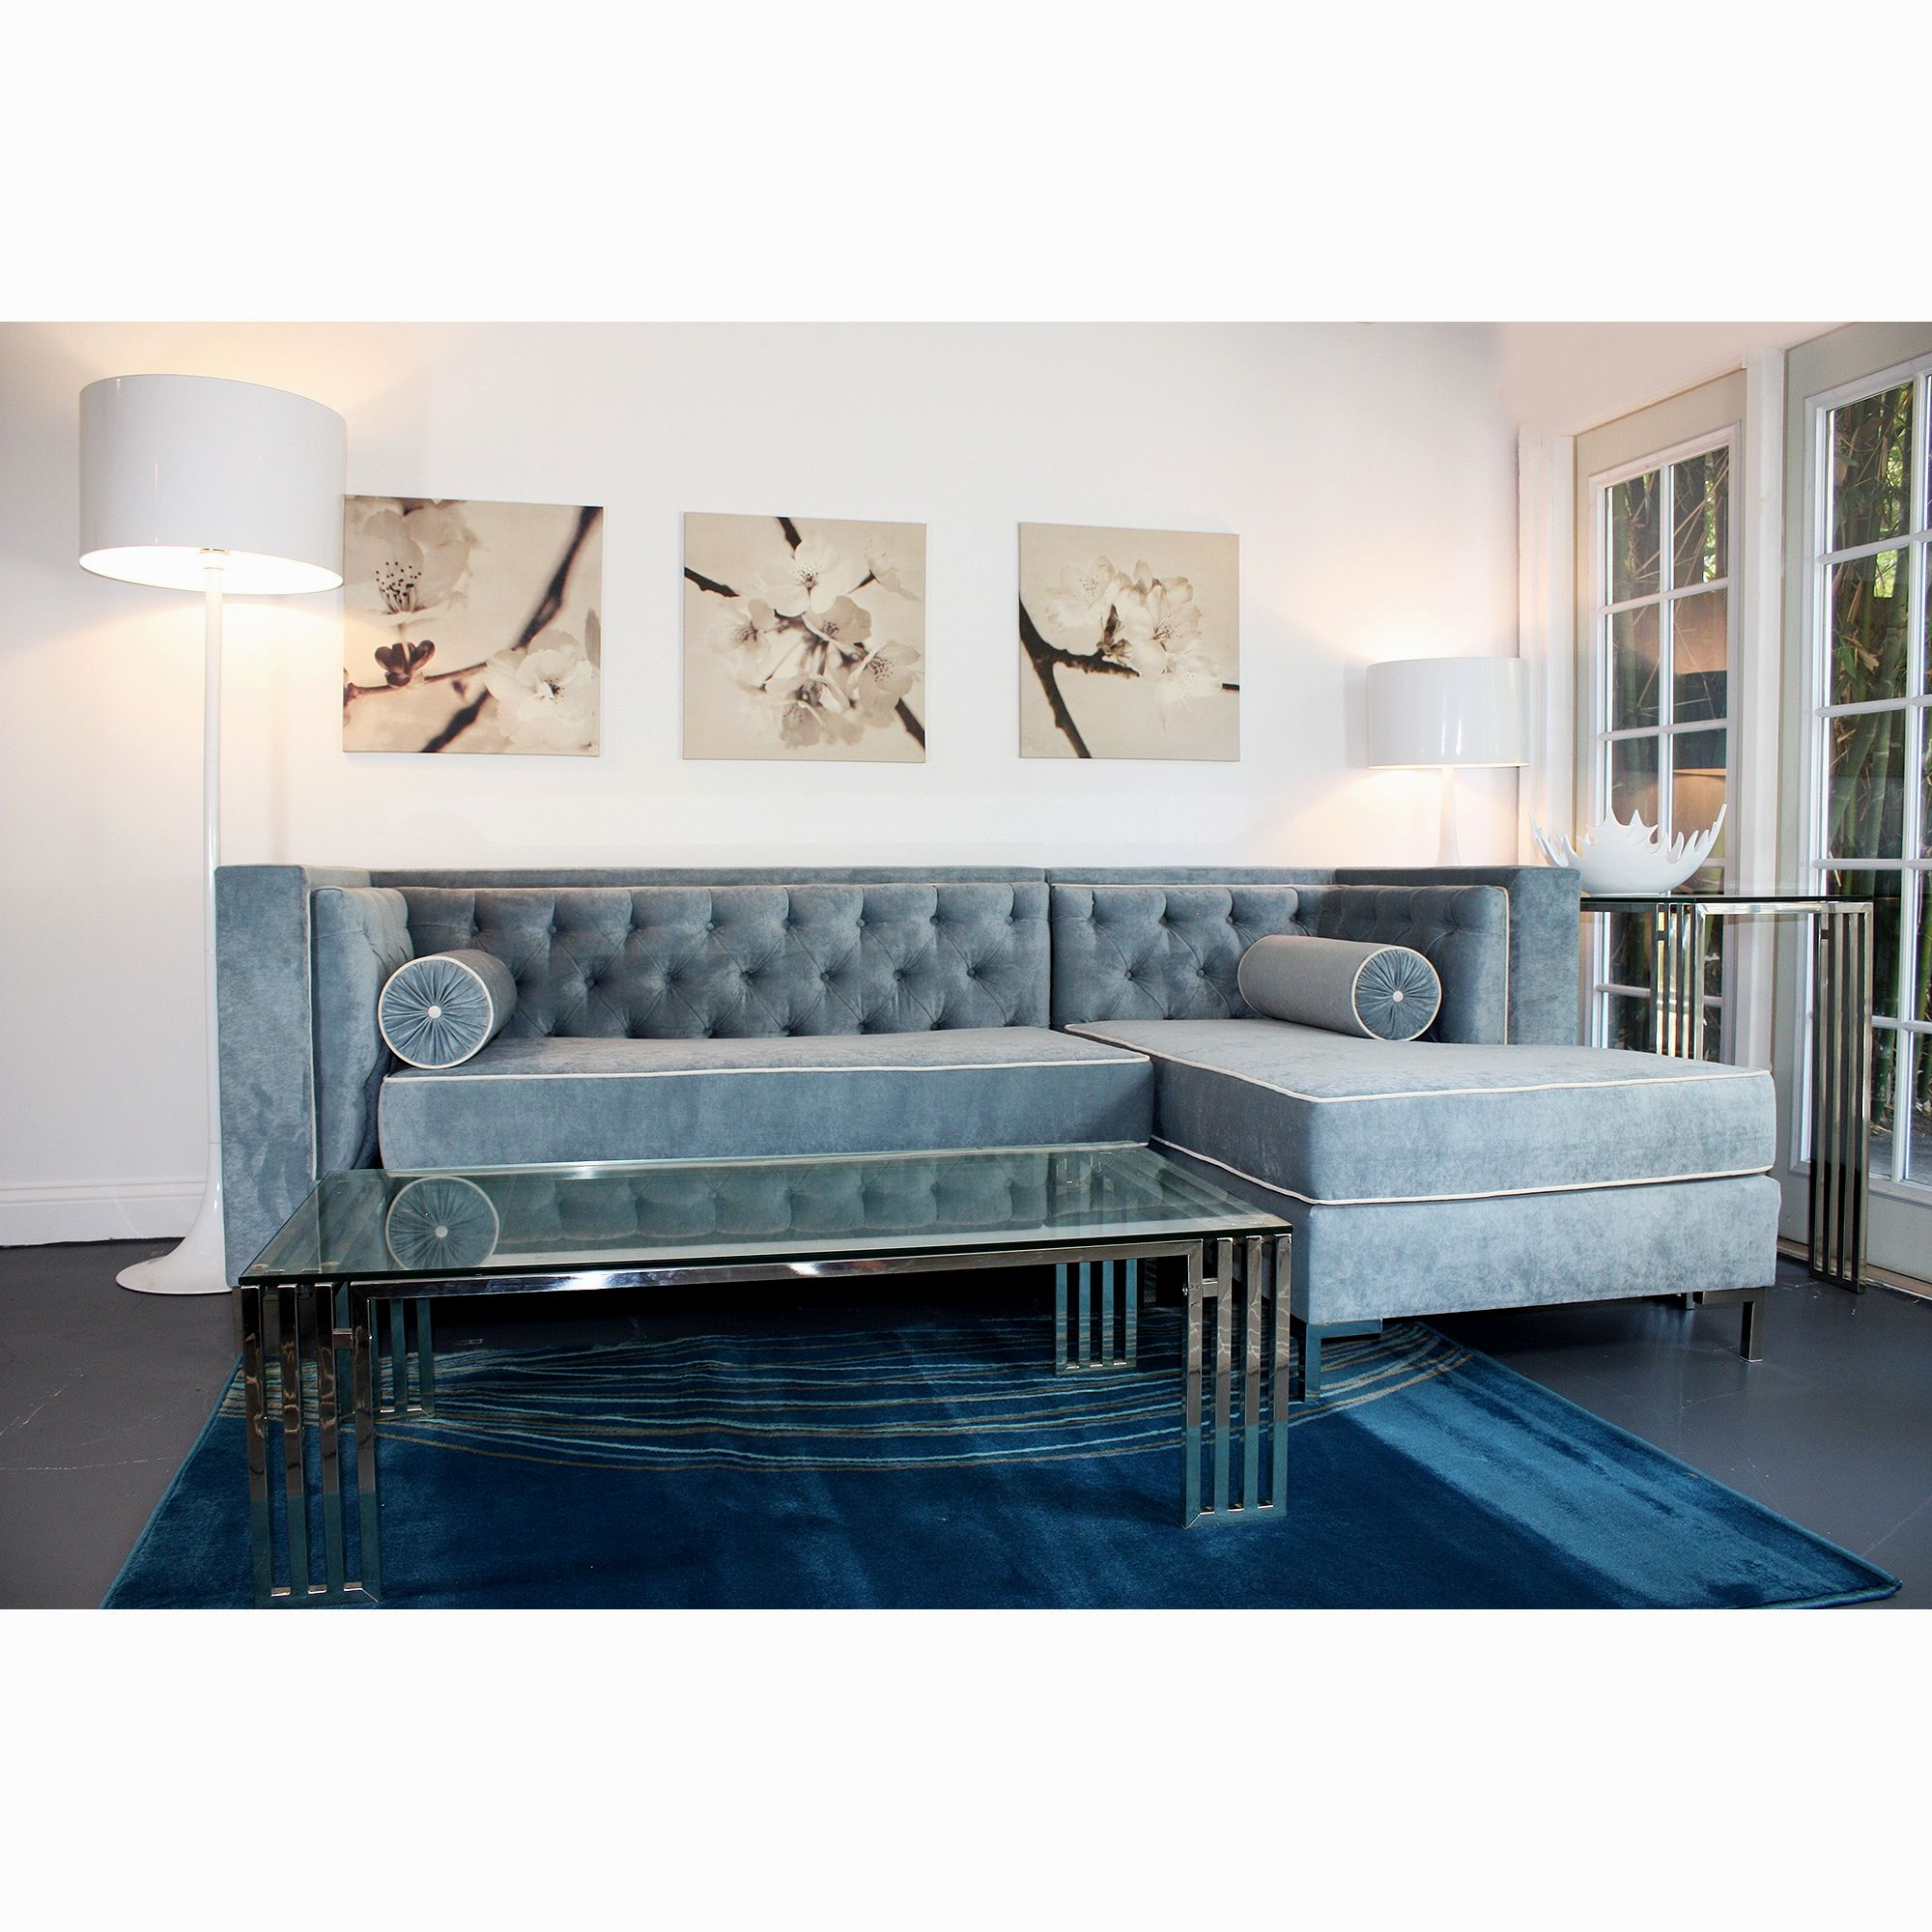 best of overstock sectional sofas online-Cool Overstock Sectional sofas Image